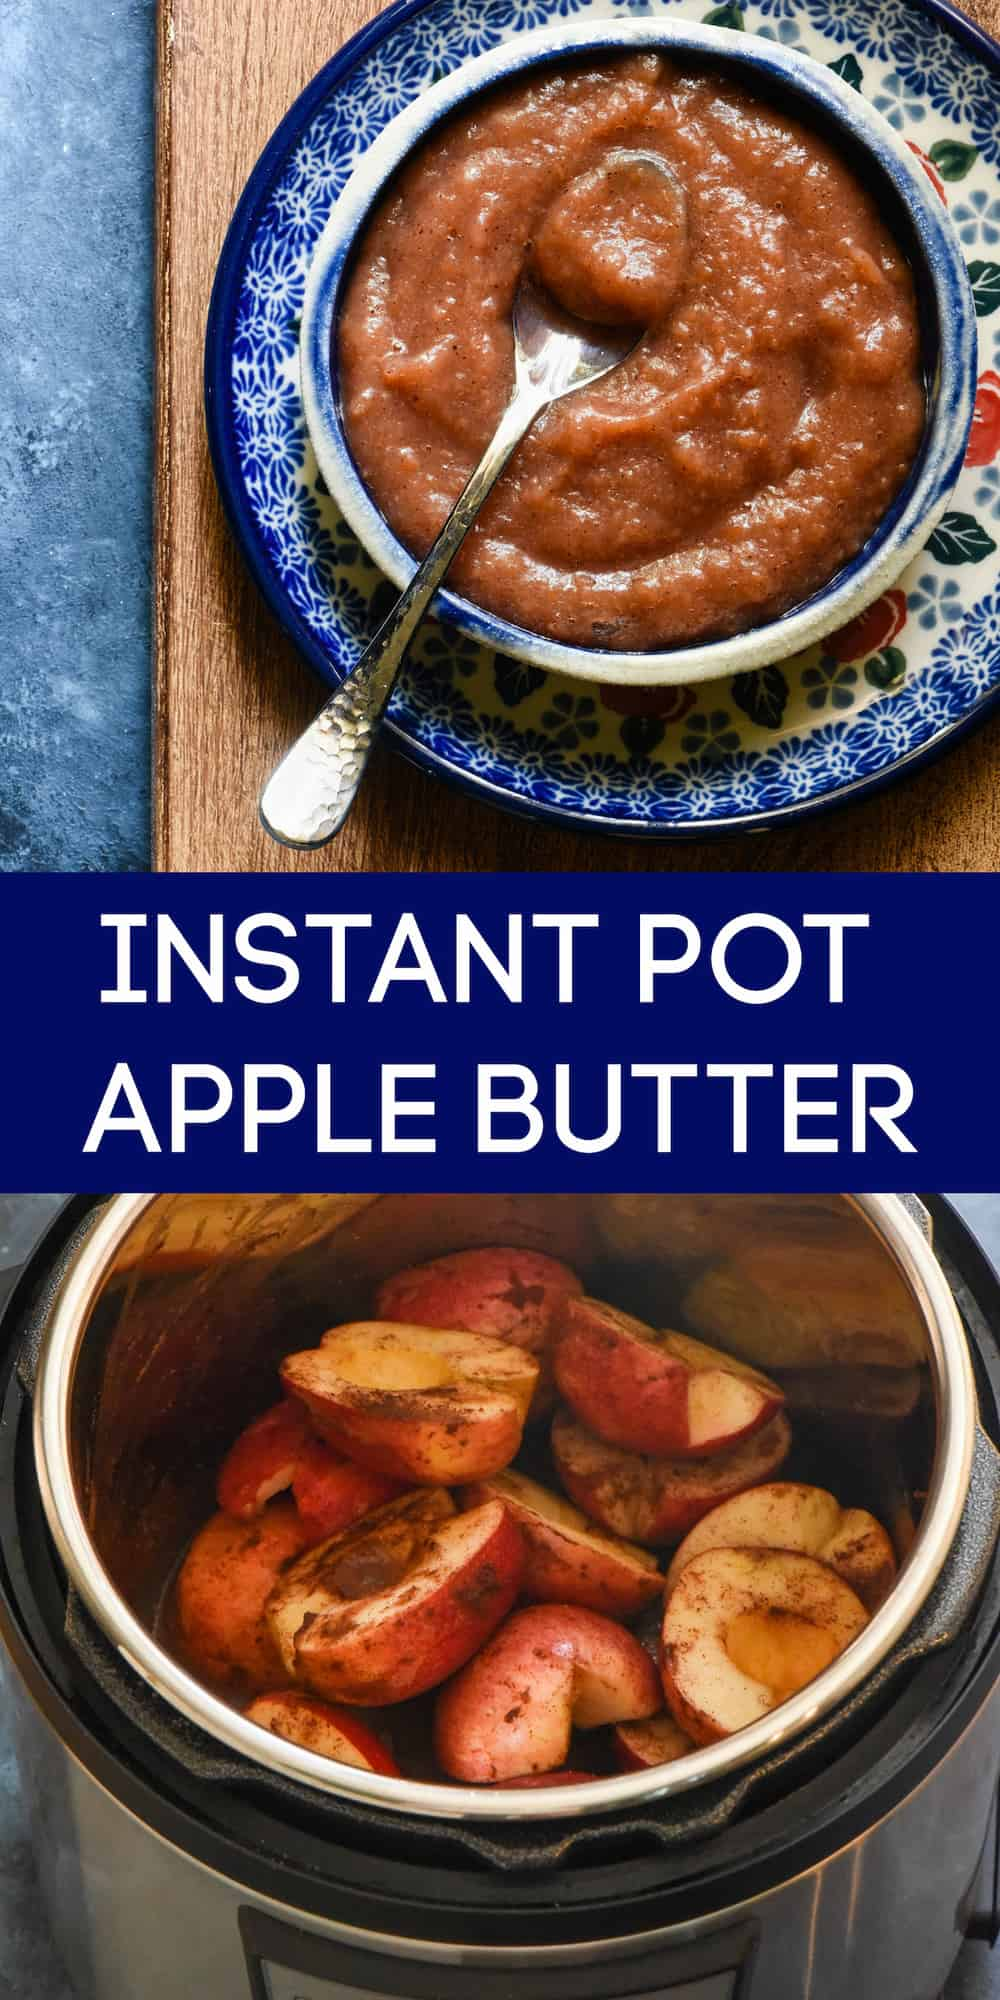 Top photo: apple butter in small dish with spoon. Bottom photo: fresh apple halves in Instant Pot. Overlay between photos: INSTANT POT APPLE BUTTER.